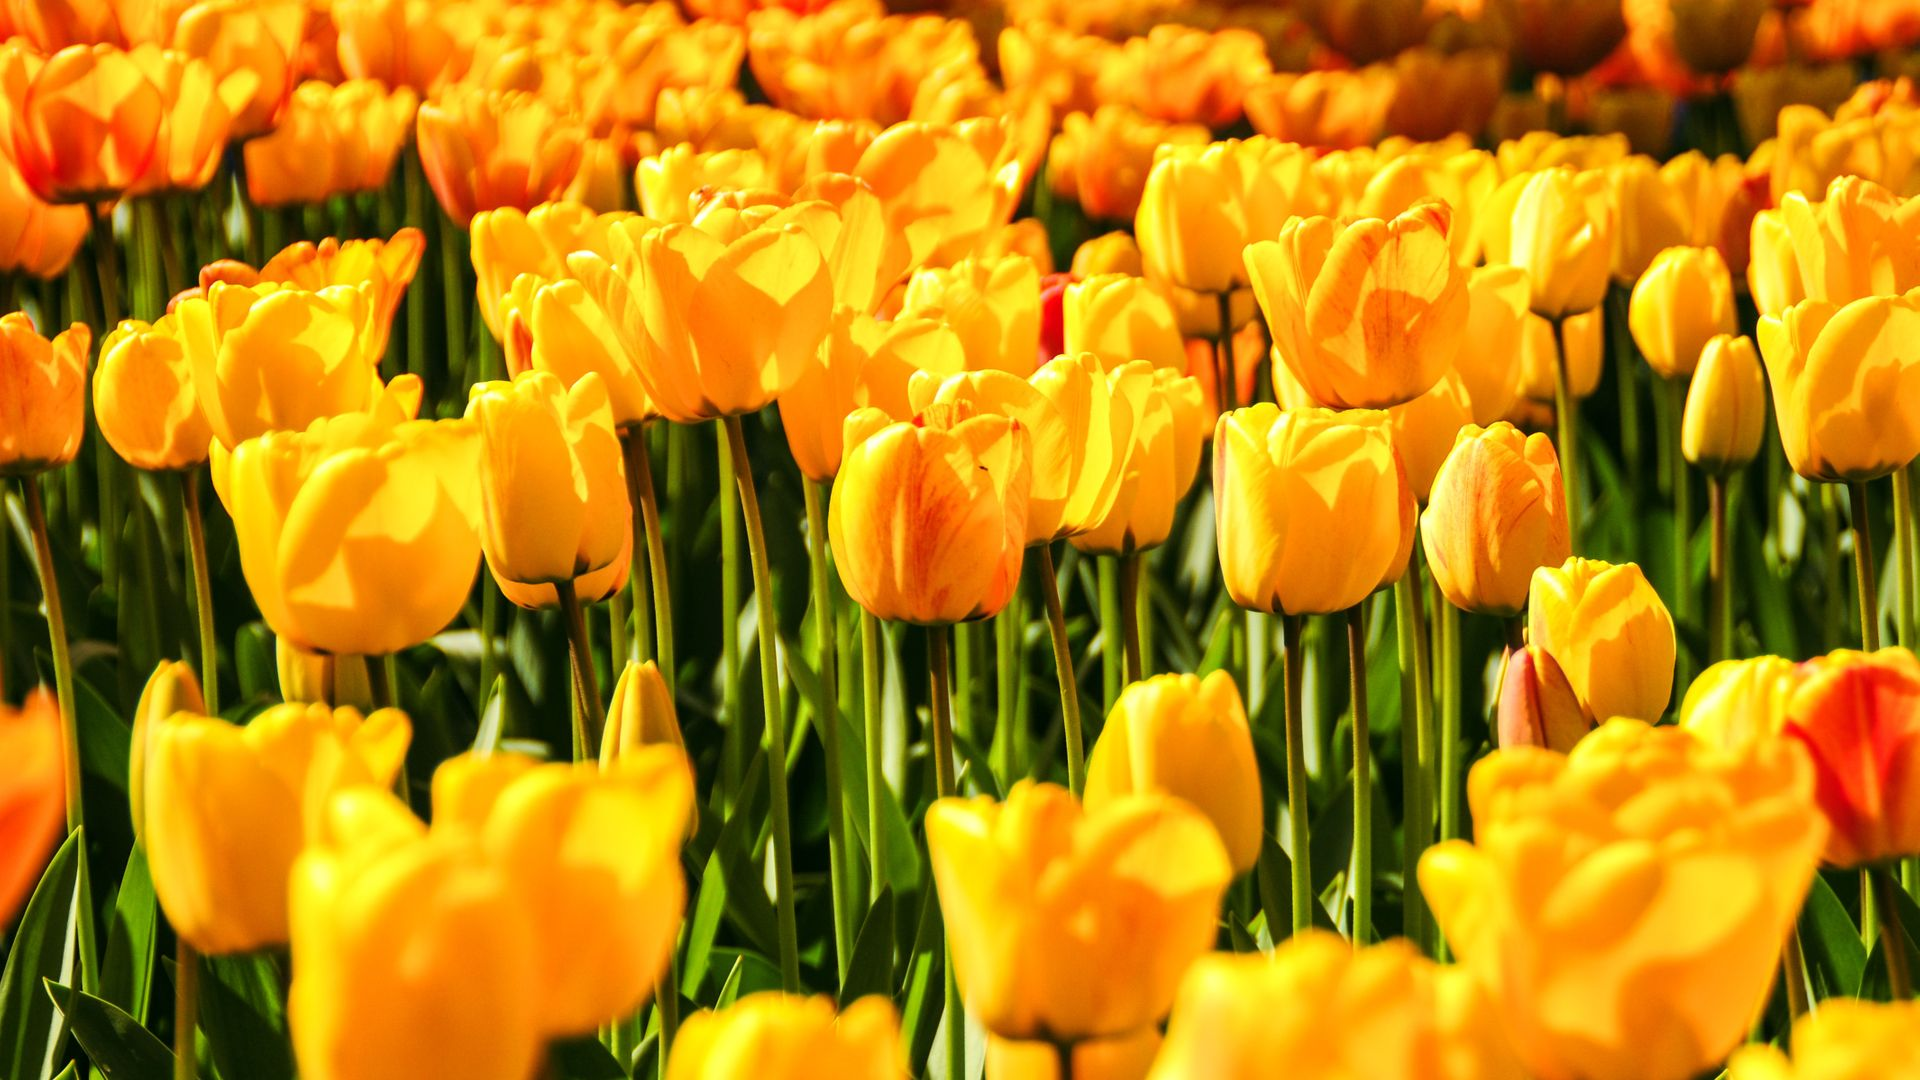 branch of knowledge,battlefield,landing field,field,study,yellowness,yellow,field of battle,tulip,landscape,flush,playing area,chicken,flowers,heyday